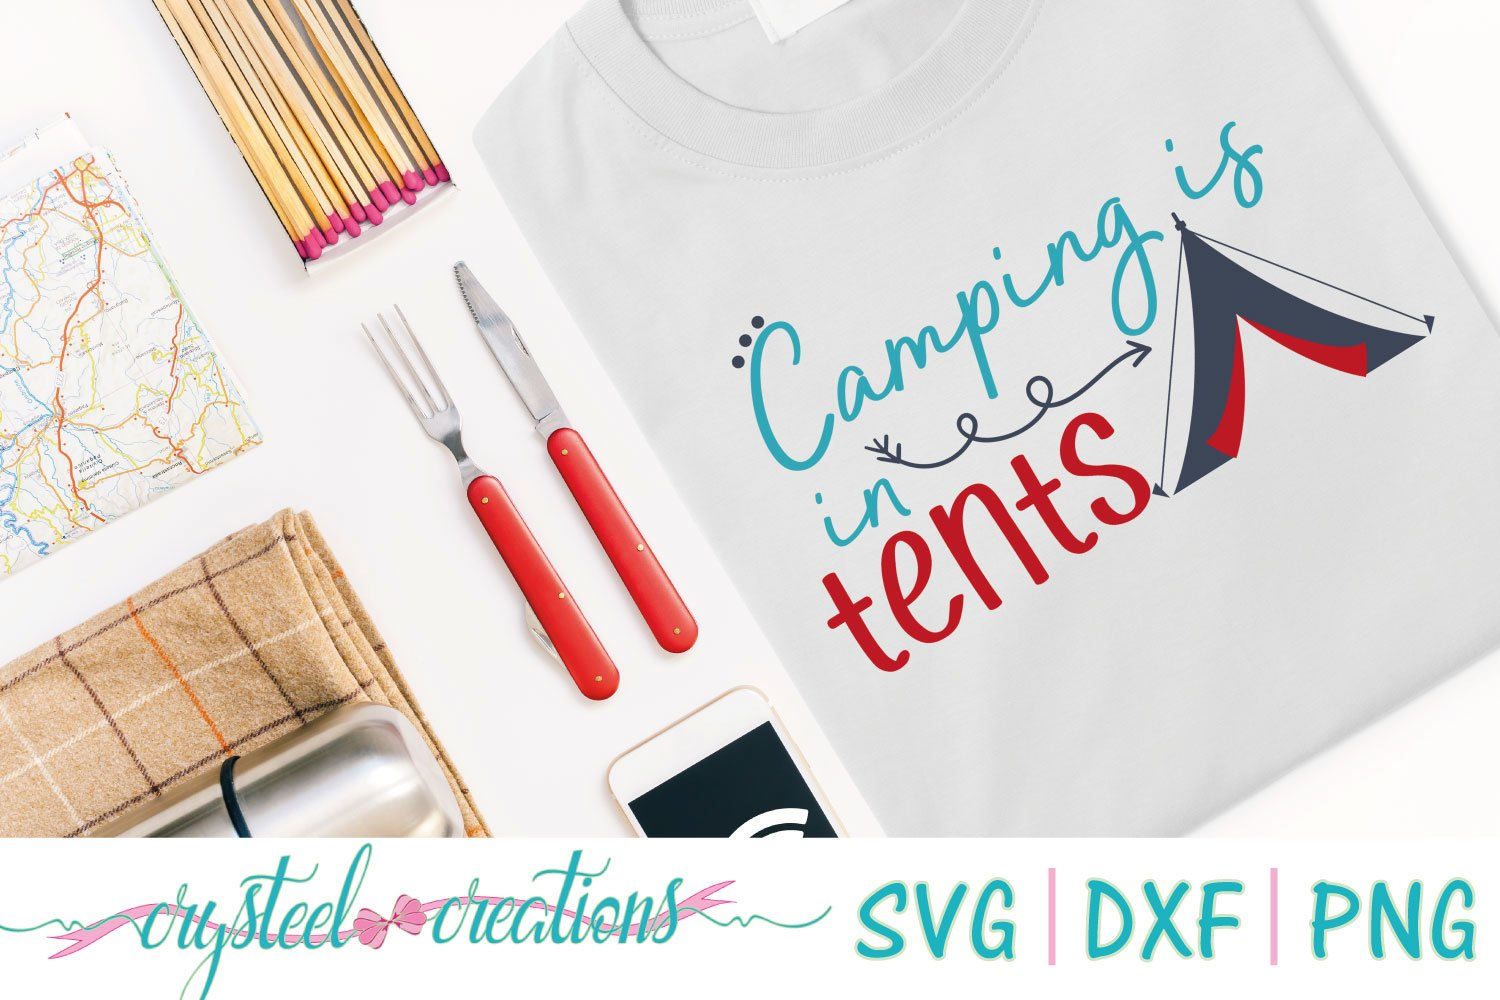 Camping Is In Tents Svg Dxf Png 65974 Cut Files Design Bundles